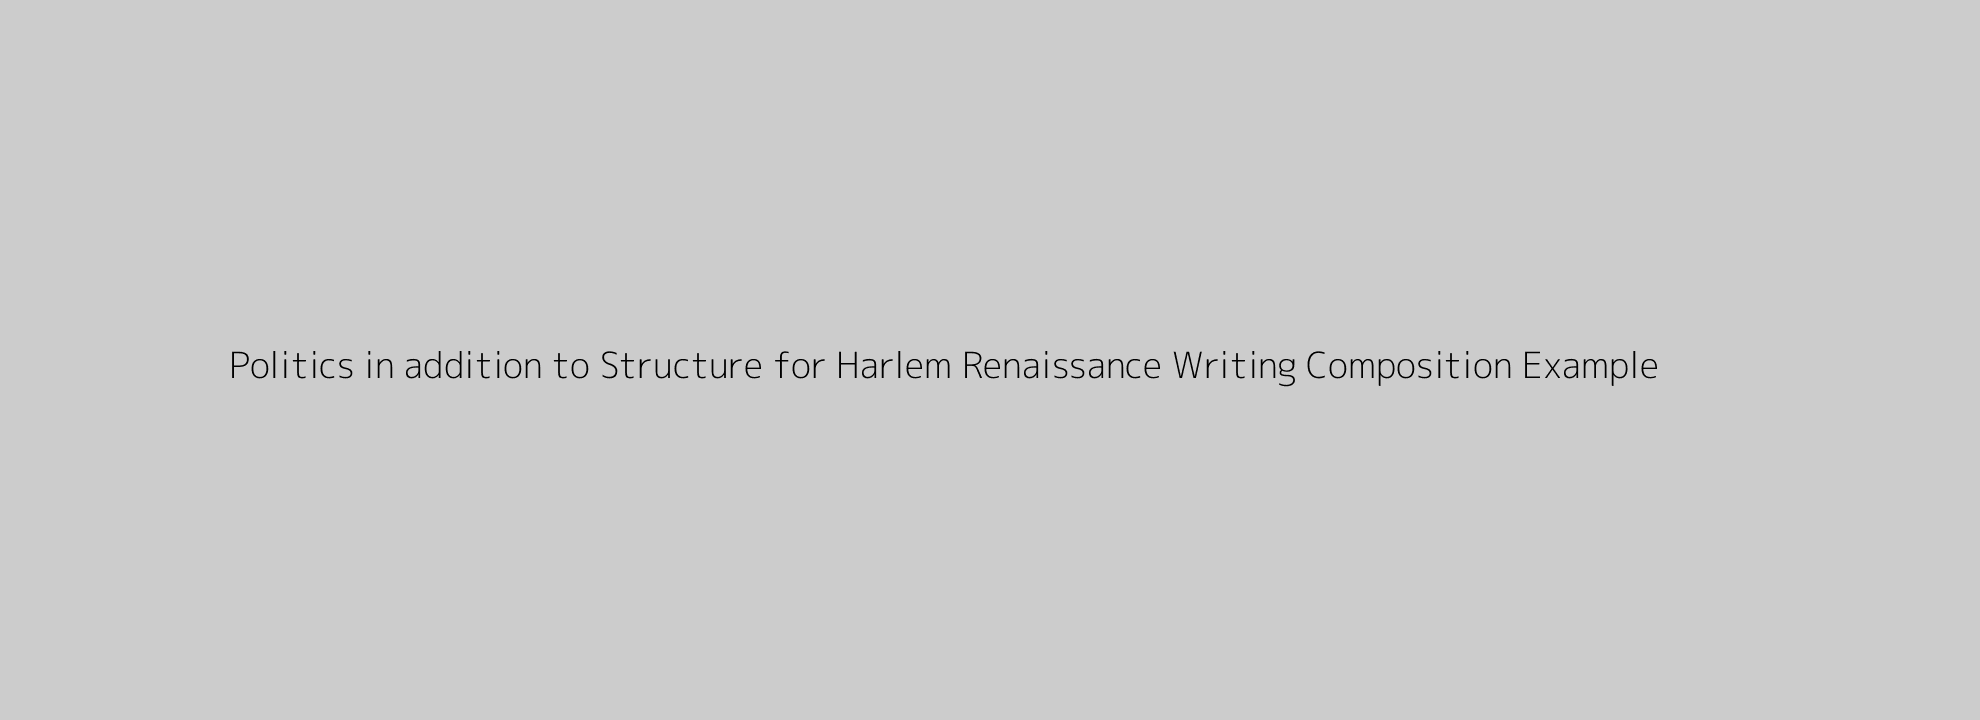 Politics in addition to Structure for Harlem Renaissance Writing Composition Example